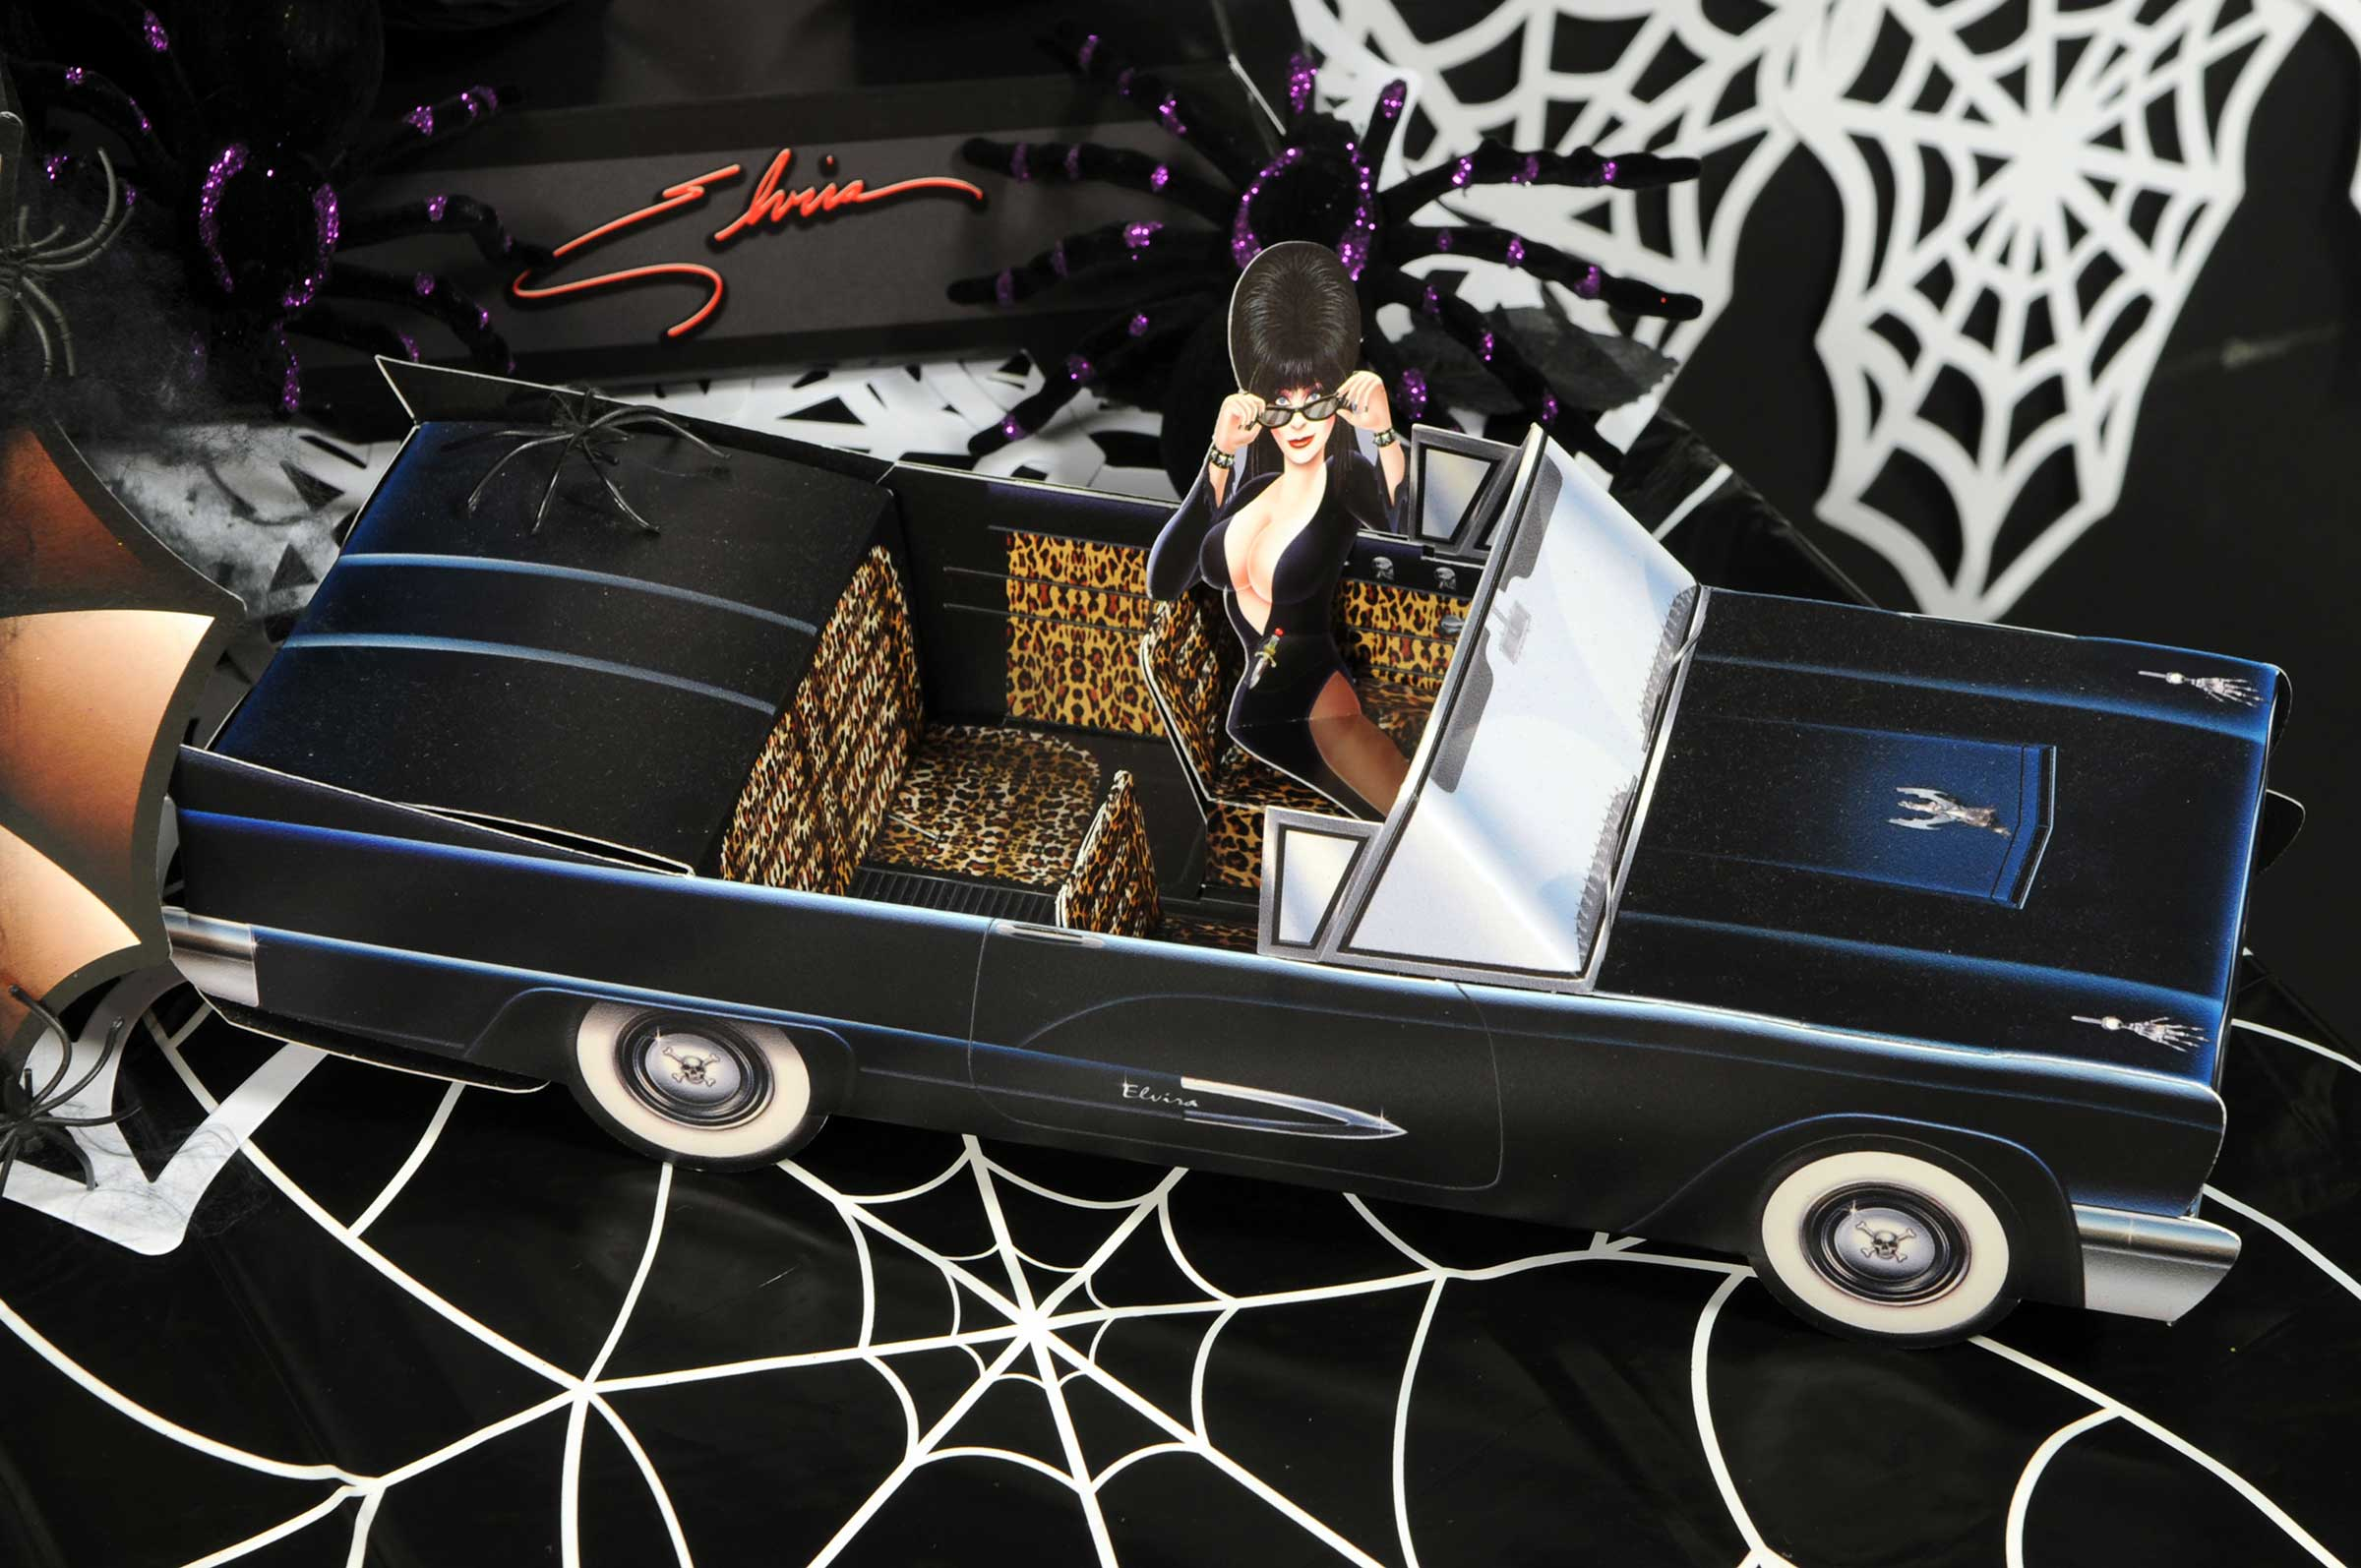 Elvira Macabre Mobile Centerpiece